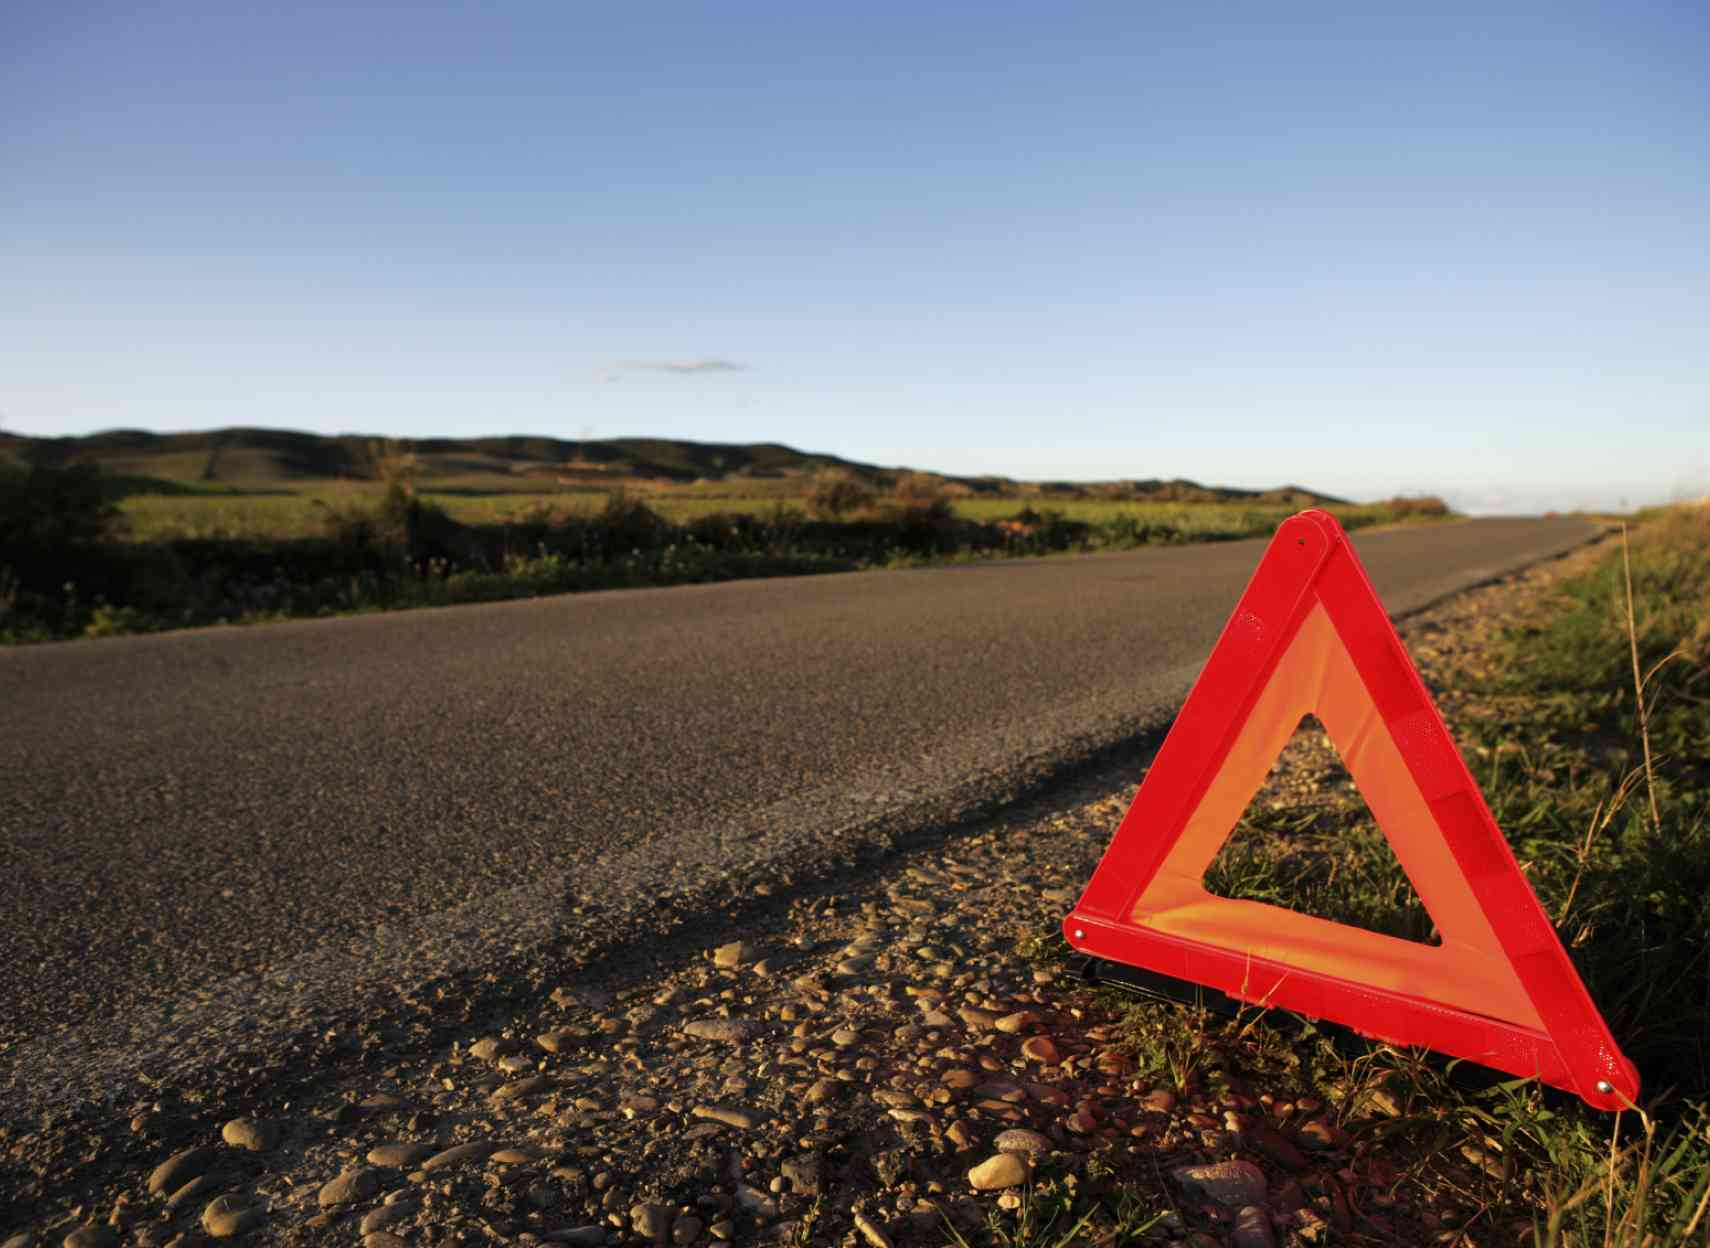 Bilan des accidents de la route en 2015